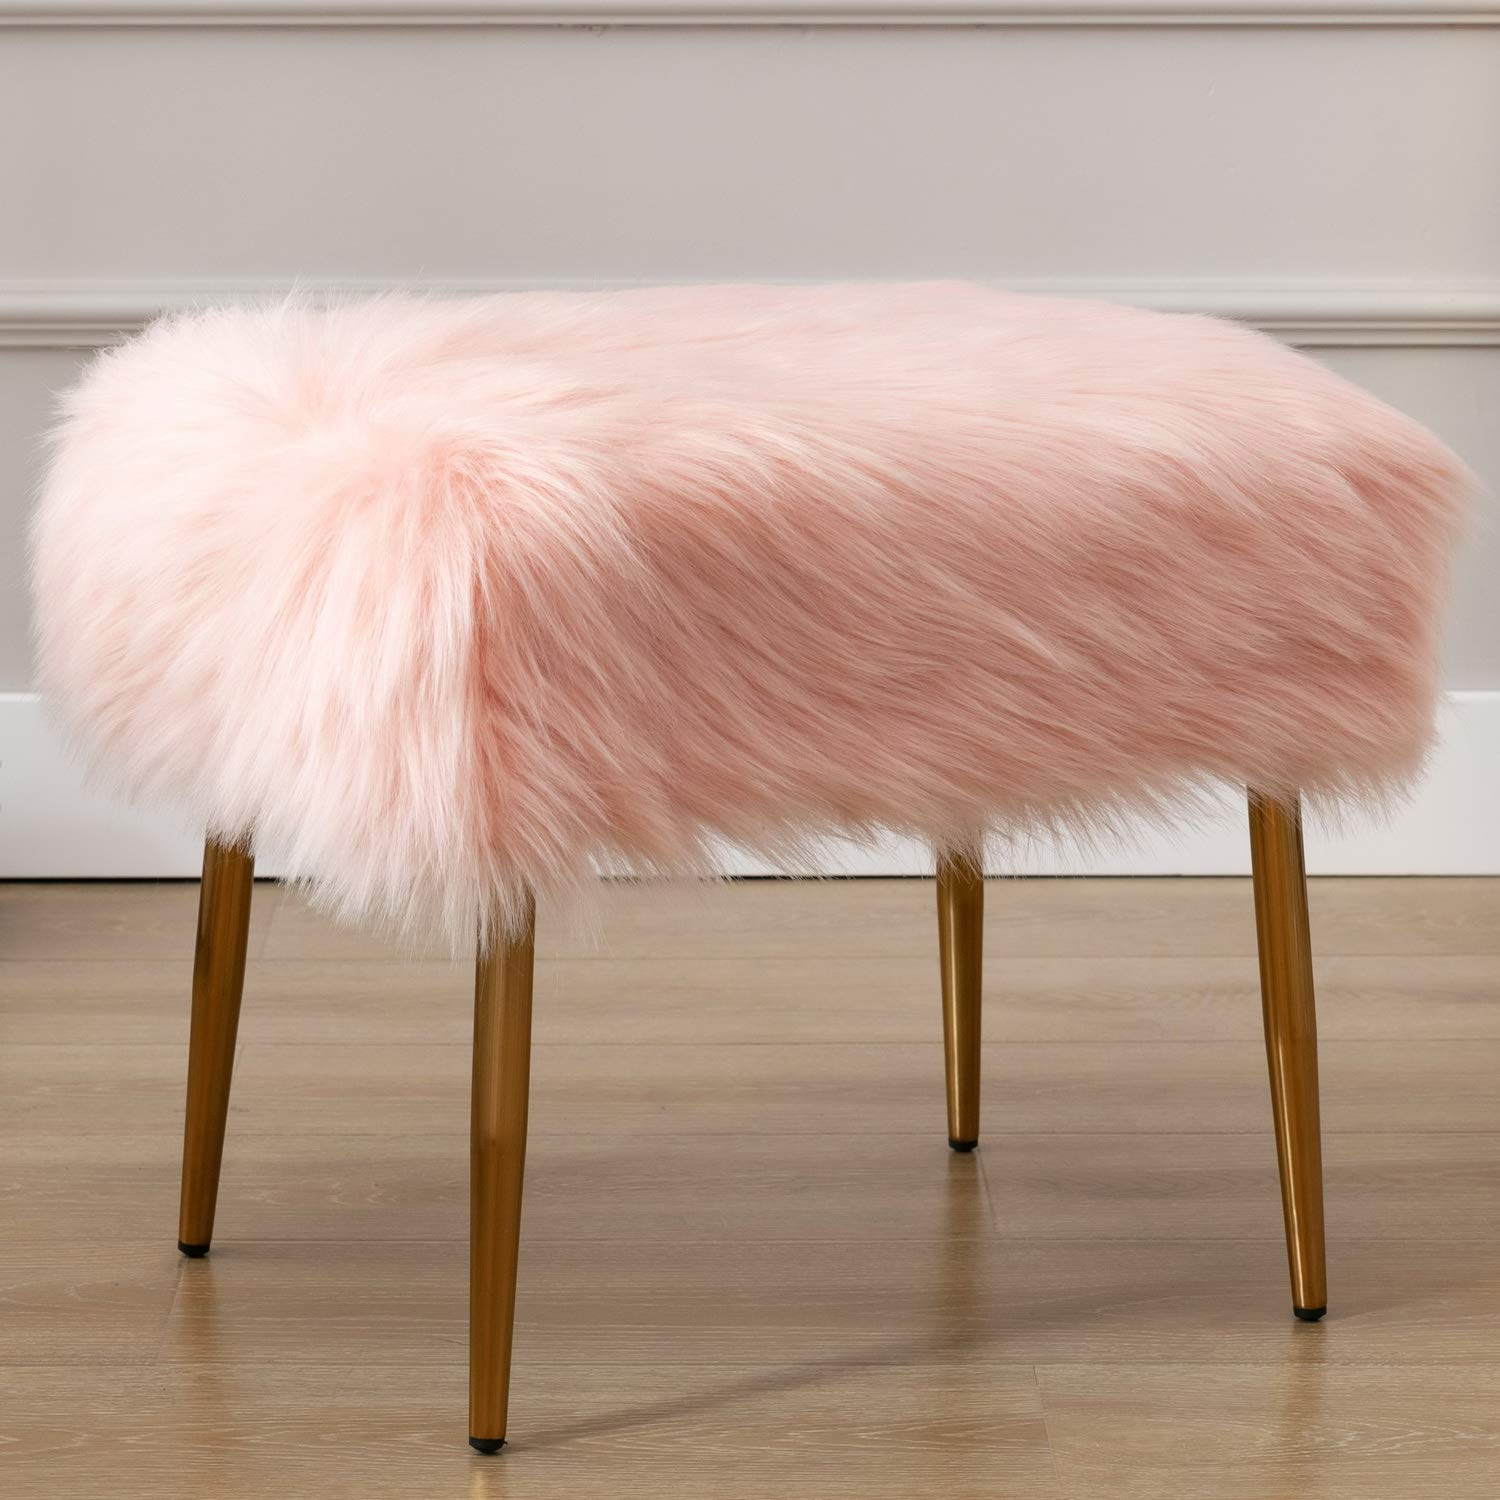 Wahson Faux Fur Accent Ottoman Footrest, Upholstered Square Shaggy Cute Fluffy Vanity Stool, for Living Room, Bedroom, Bathroom, Den, Kids Study Room, Blush